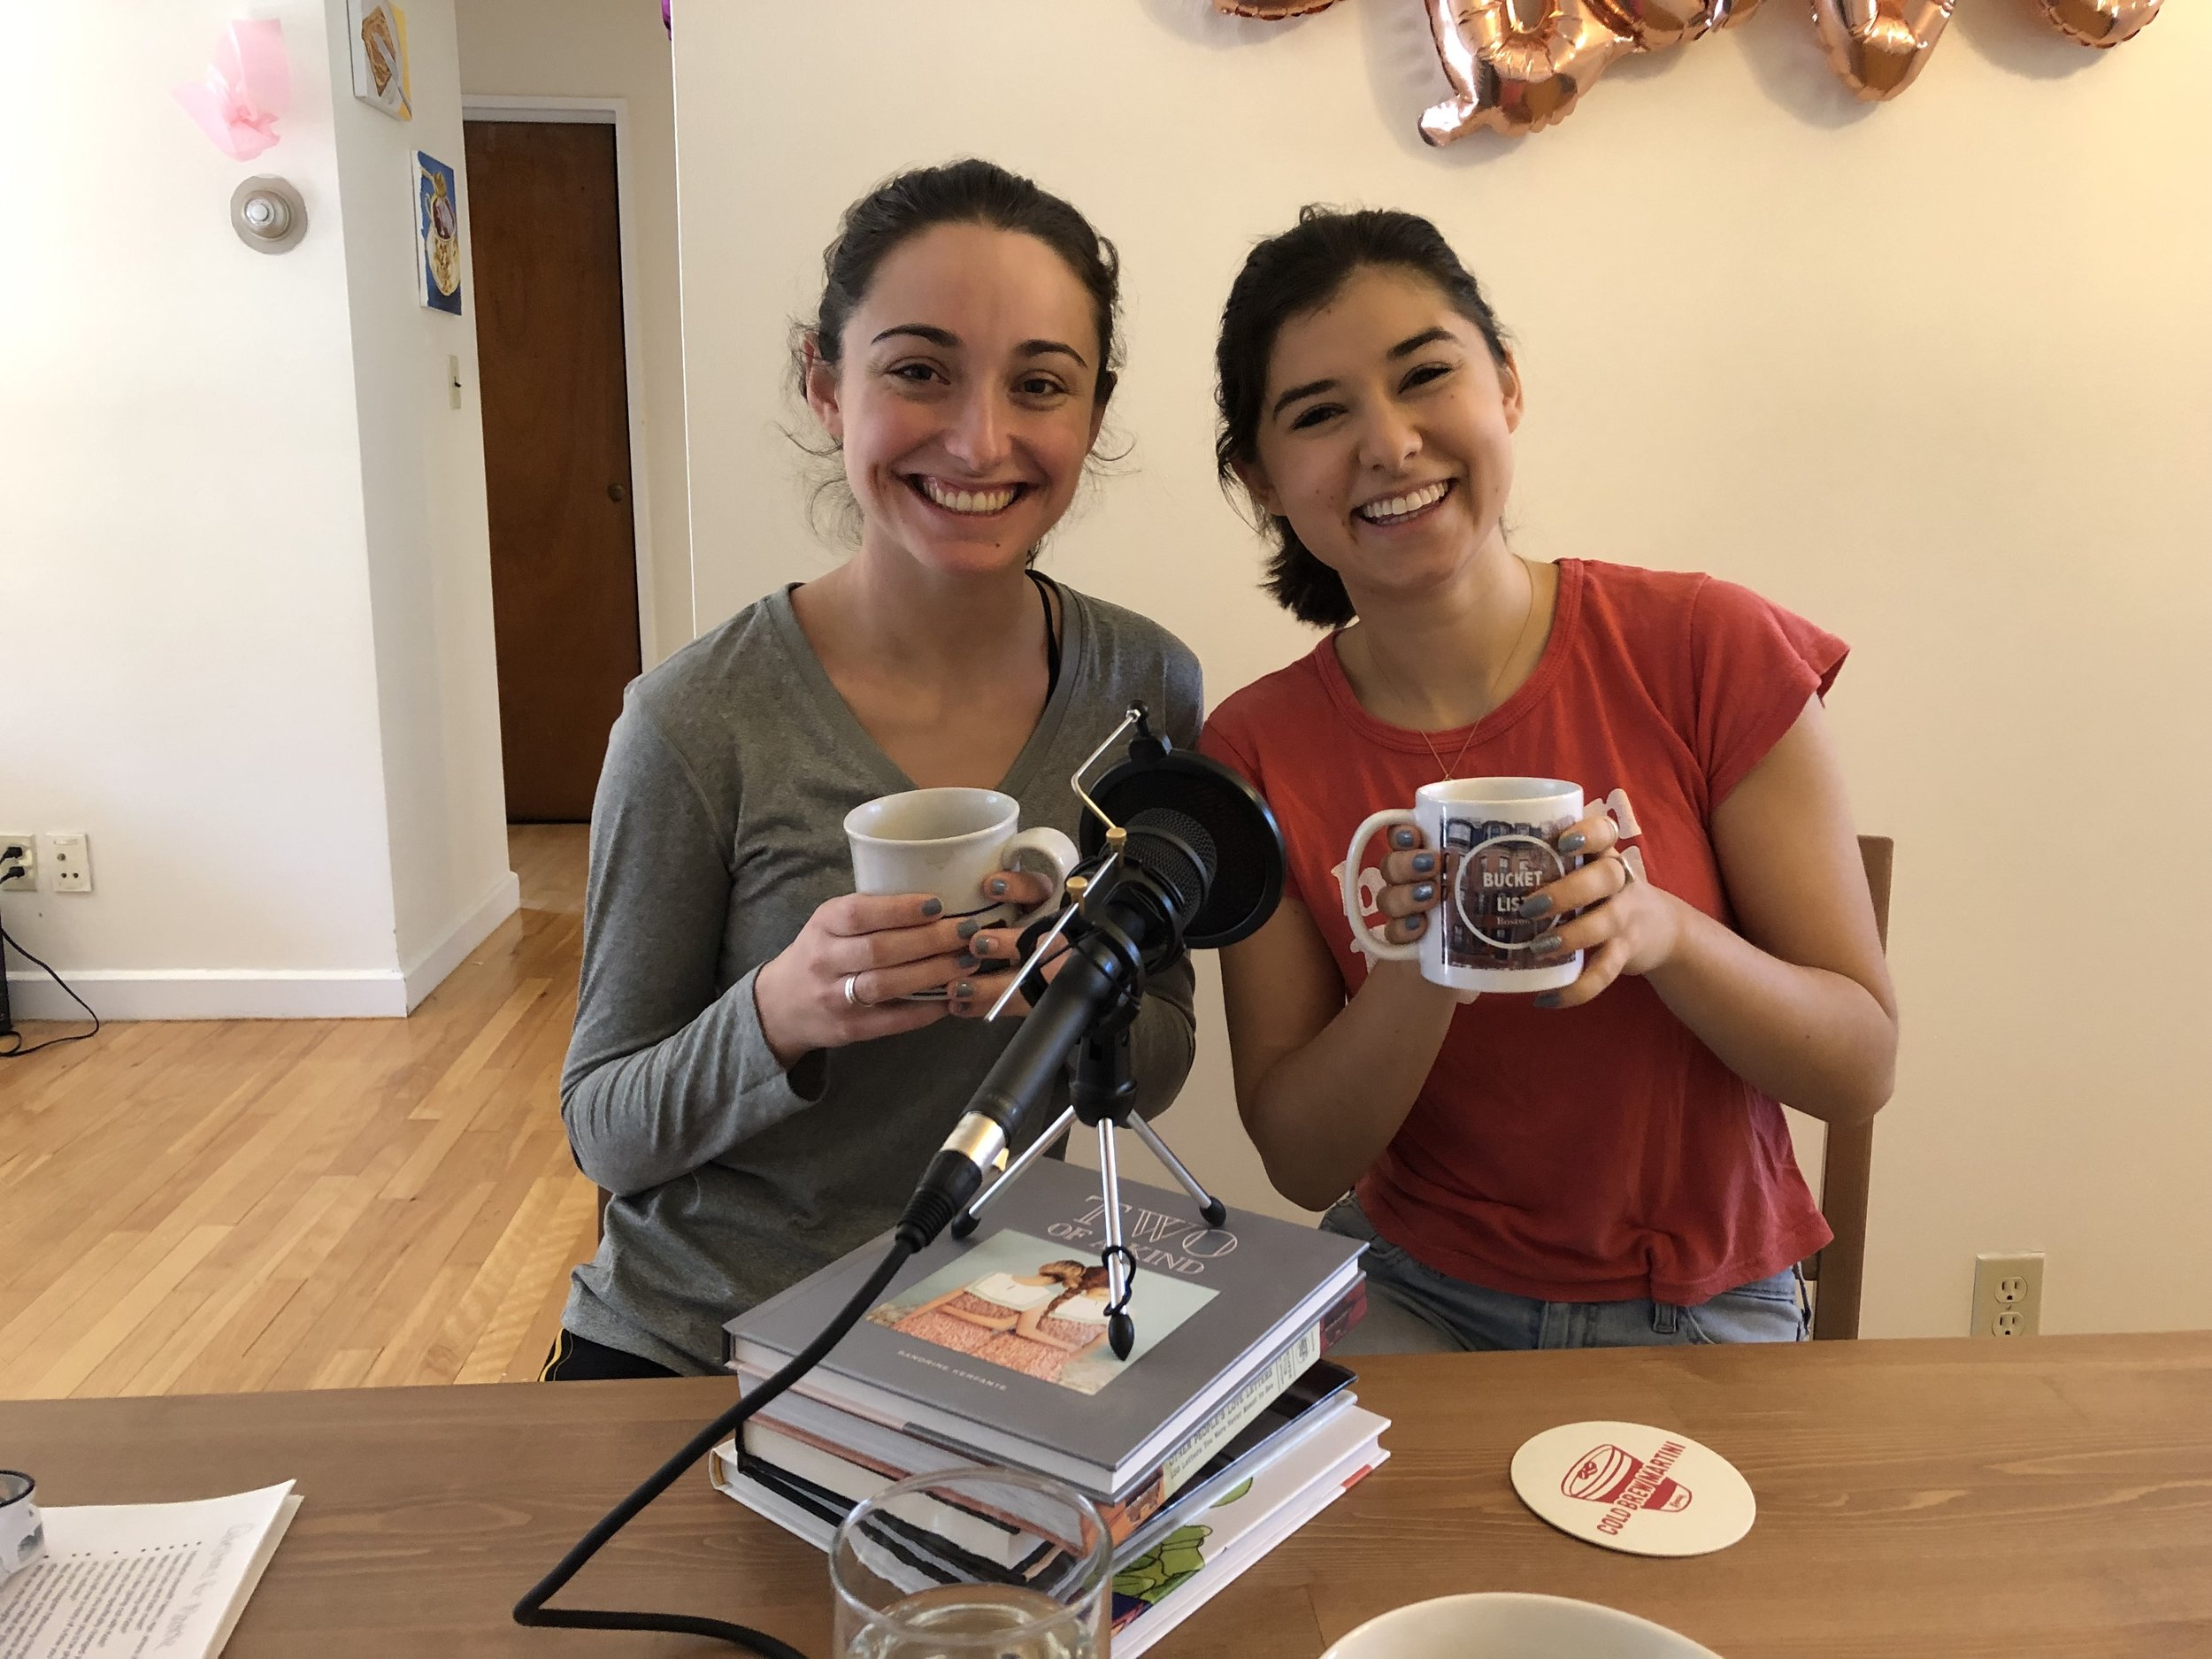 Kate and Maddie in their shared apartment on the day of our interview (check out the Bucket List Boston logo mug!)